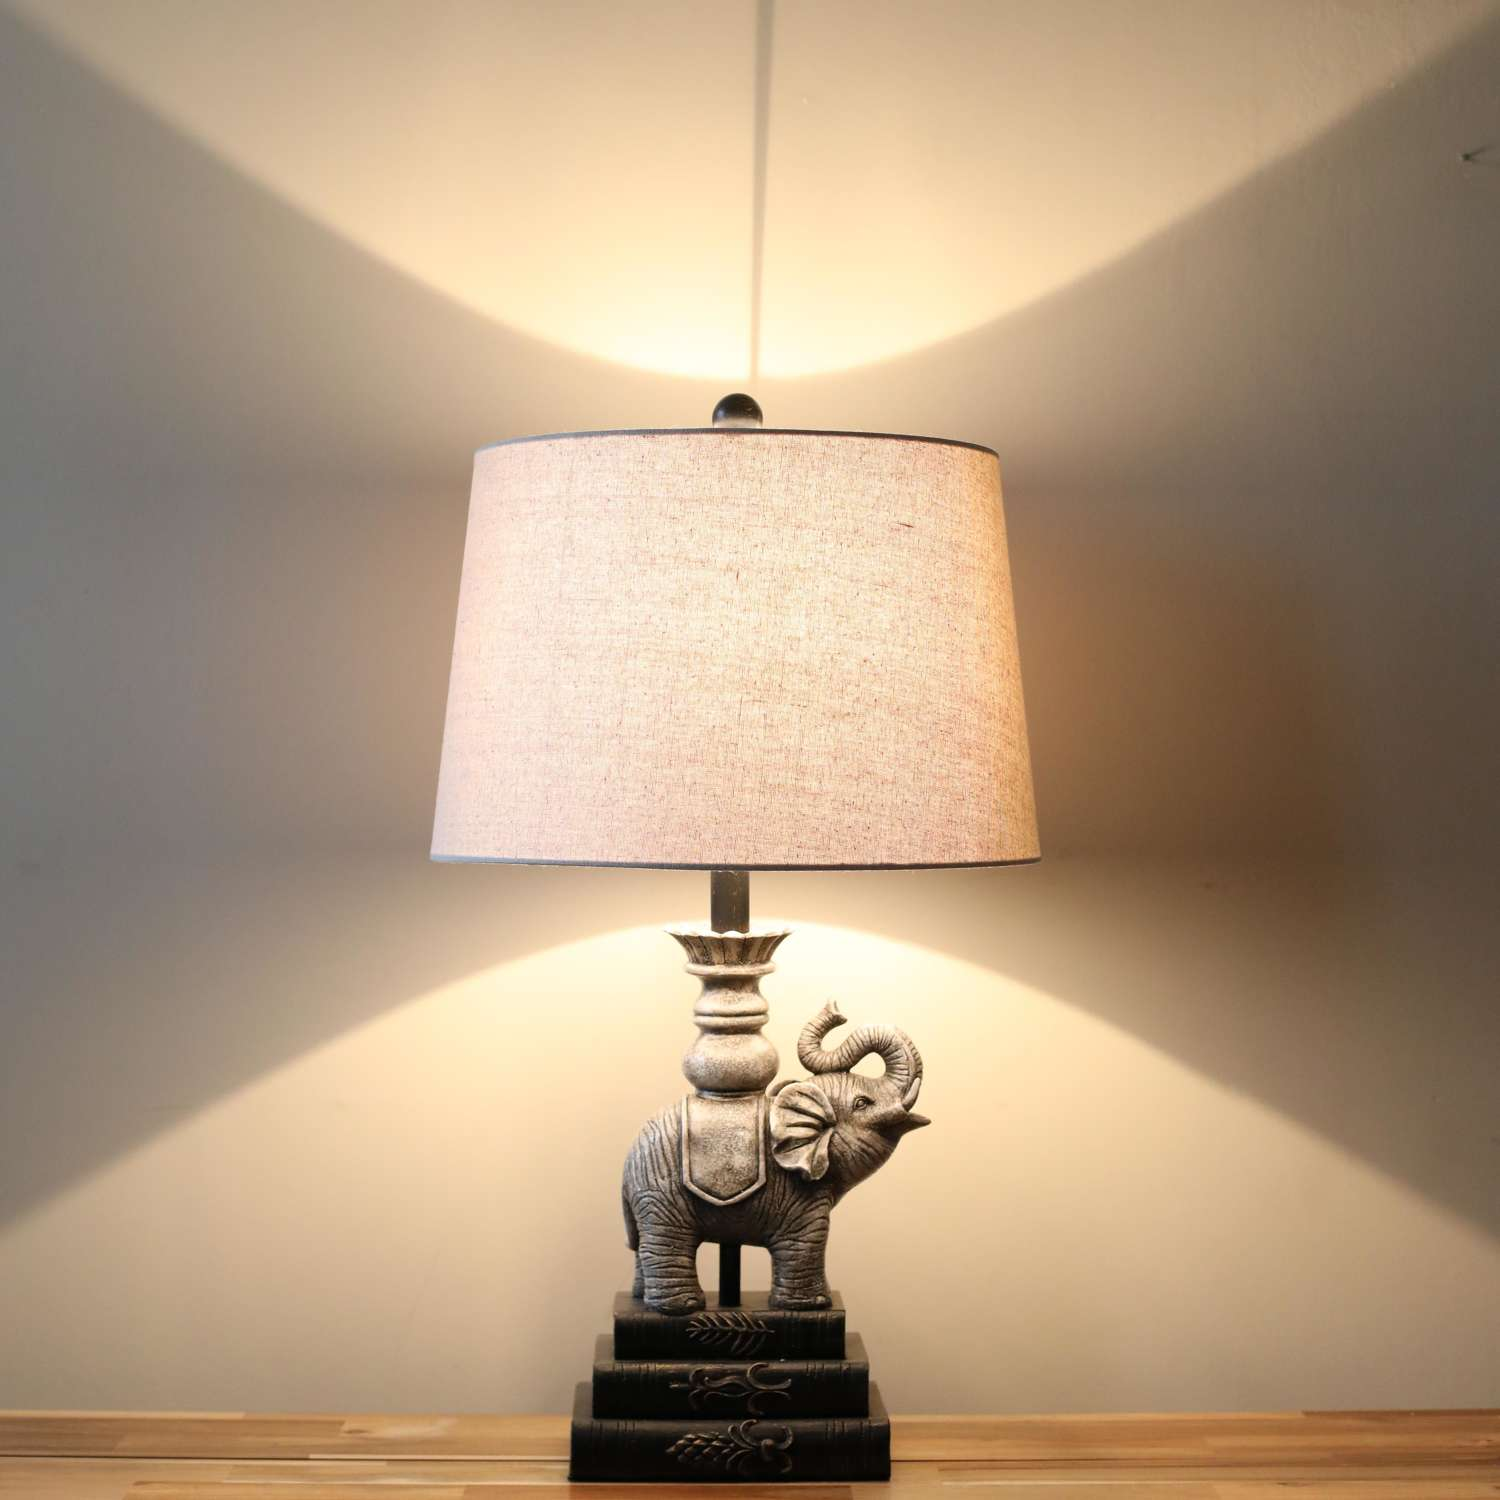 Elephant Table Lamp Complete with Cream Linen Shade.